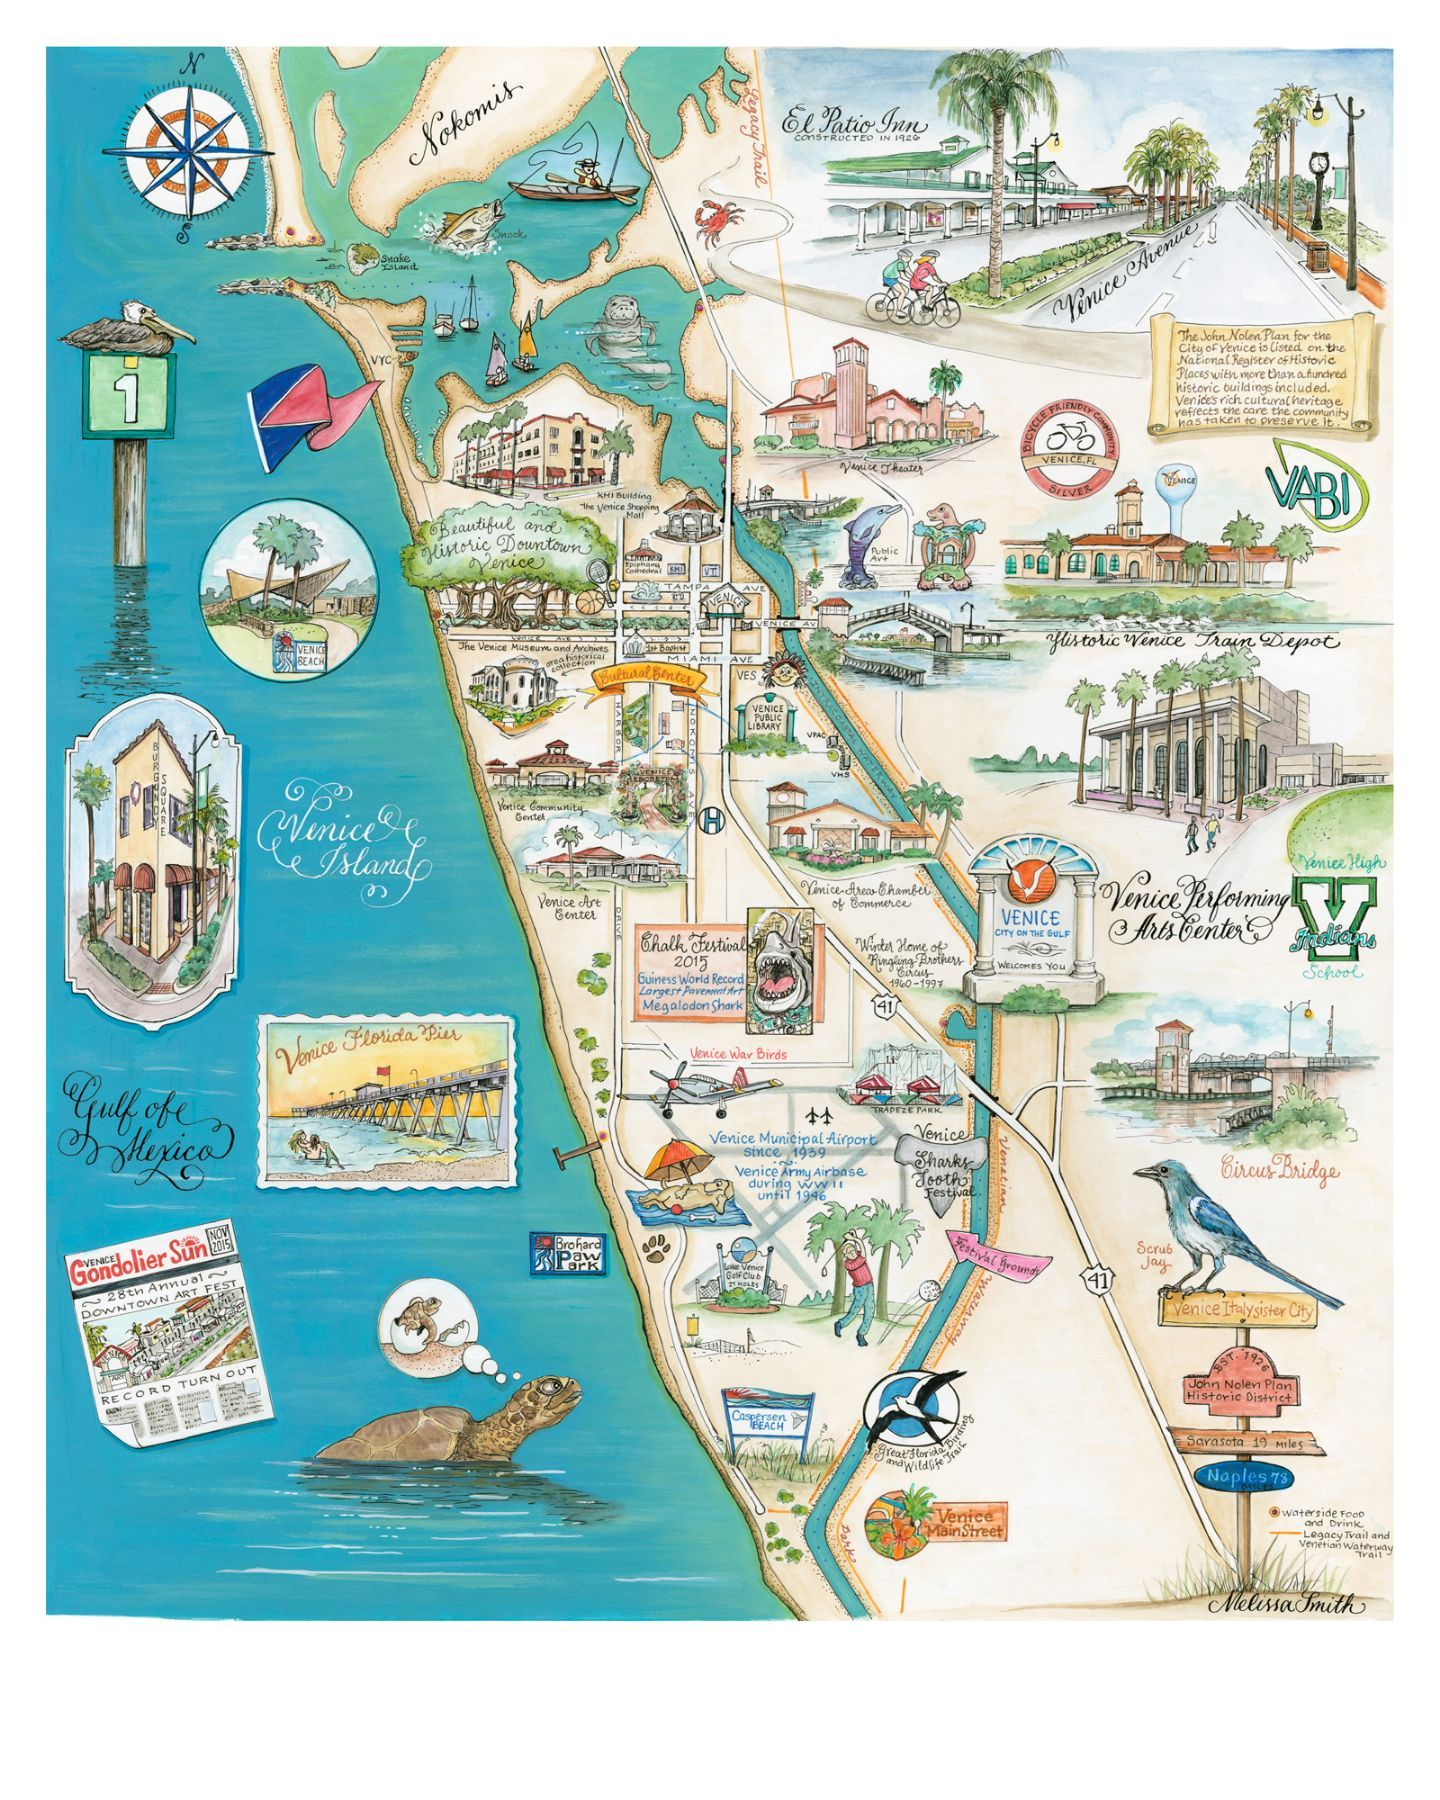 Venice, Florida Map - This Map Is One Of The Prettiest Maps I Have - Where Is Port Charlotte Florida On A Map